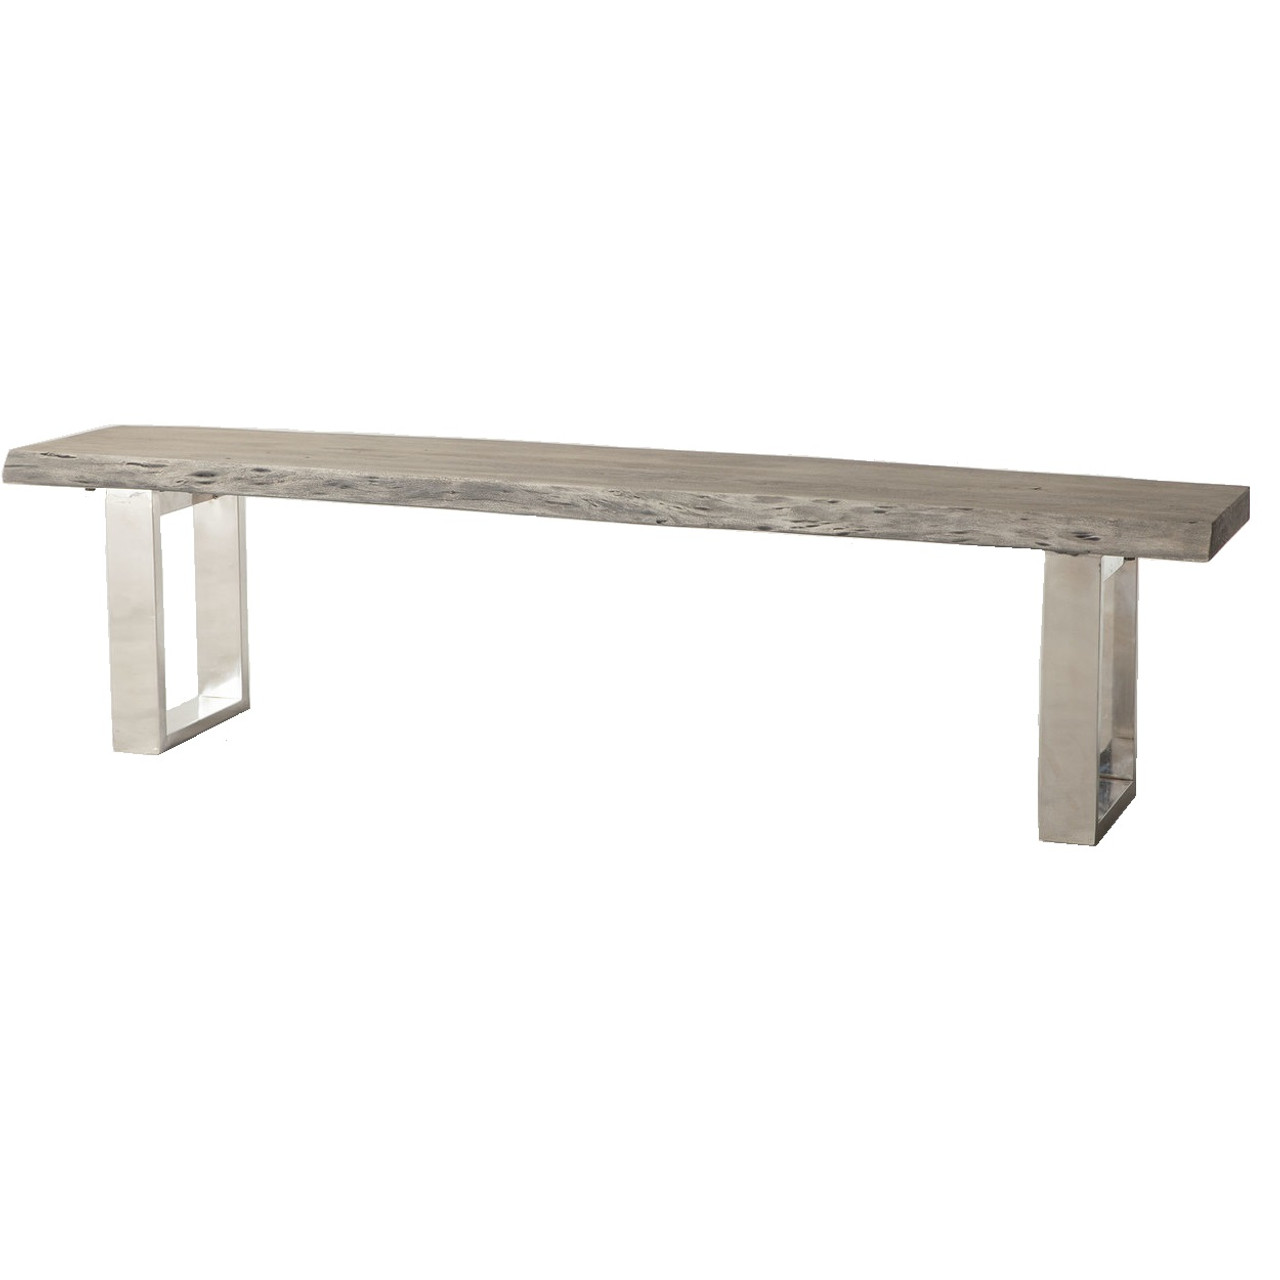 Wondrous Modern Live Edge Wood And Stainless Steel Bench 68 Gmtry Best Dining Table And Chair Ideas Images Gmtryco